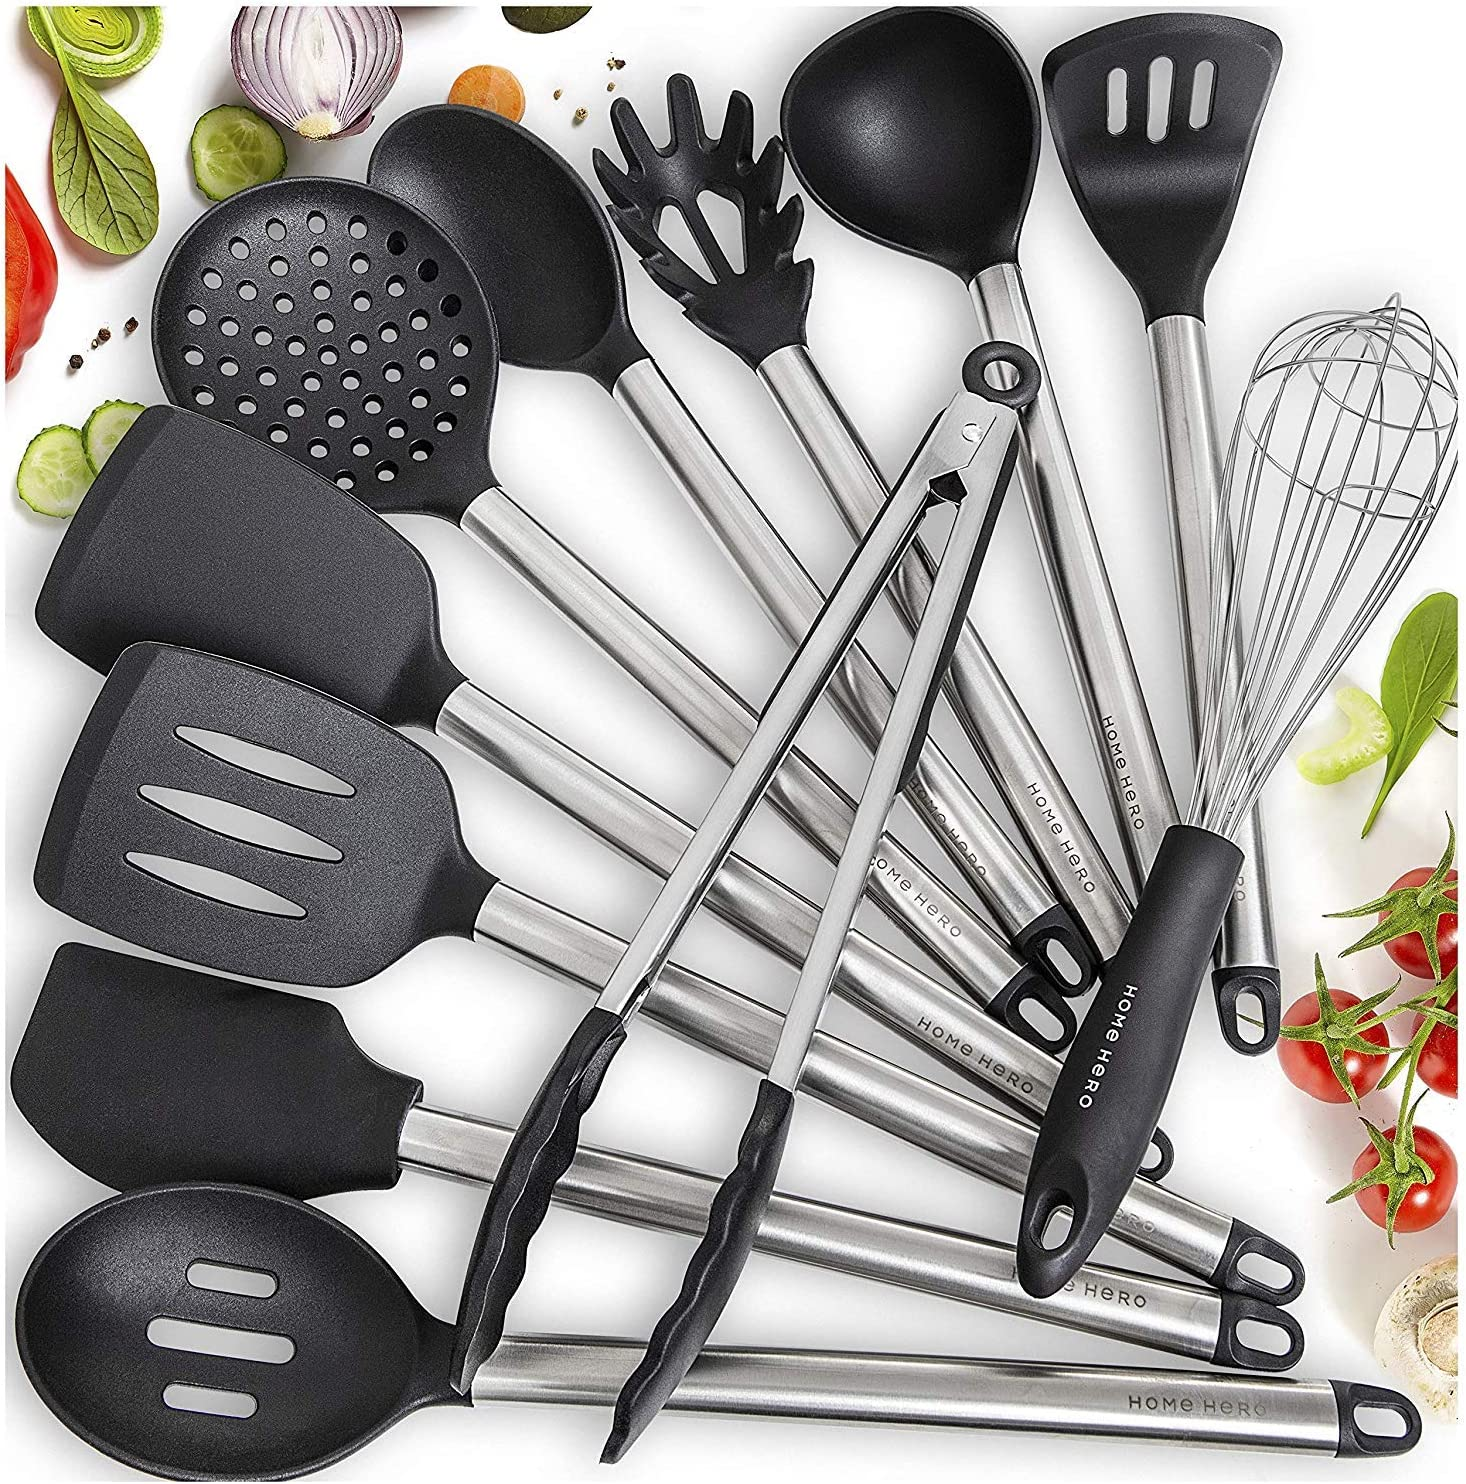 Home Hero 11 Silicone Cooking Utensils Kitchen Utensil Set - Stainless Steel Silicone Kitchen Utensils Set